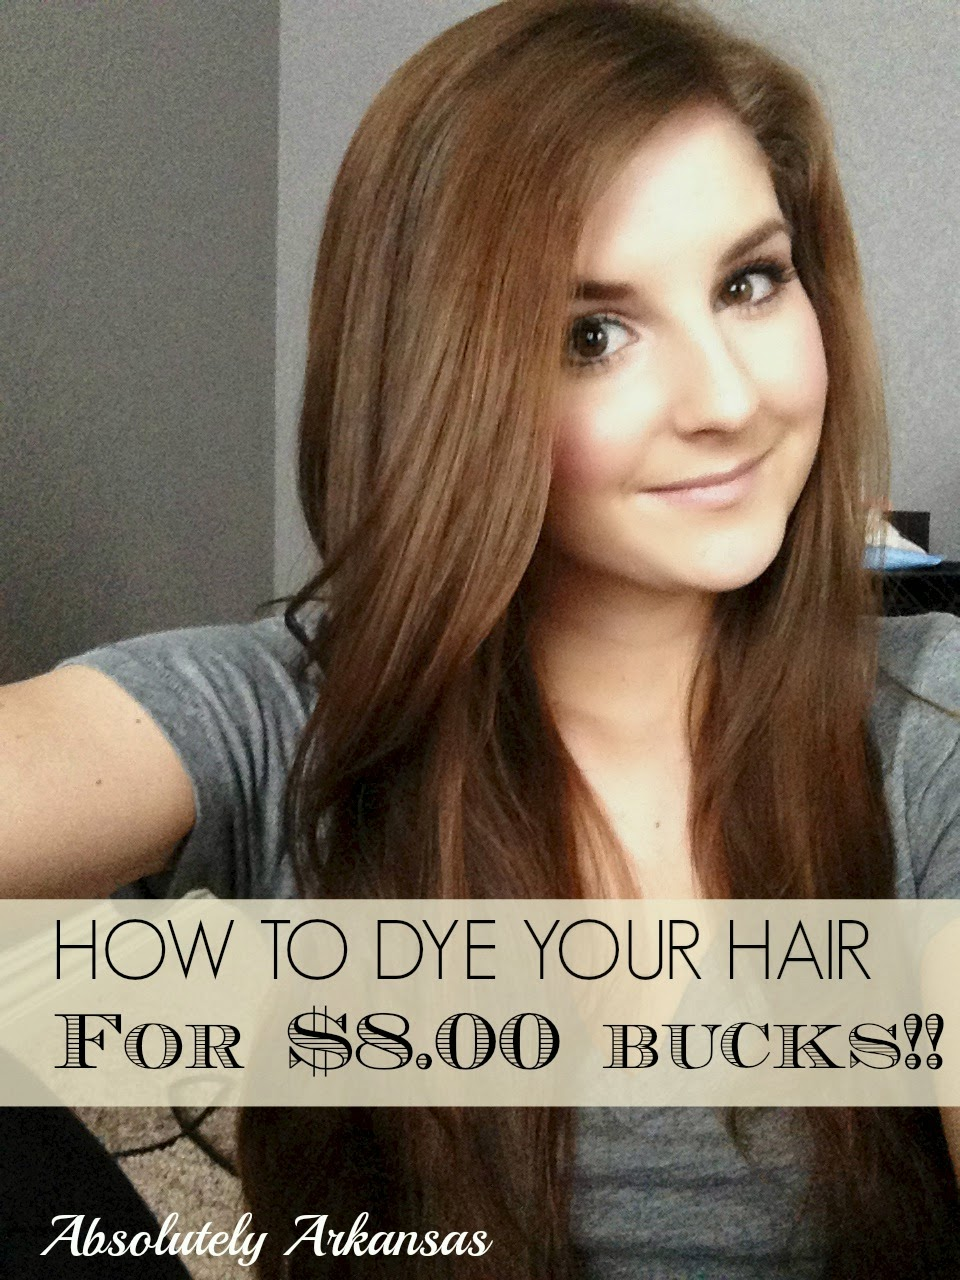 Rose & Co Blog: Dying your own hair! At home! For eight bucks!